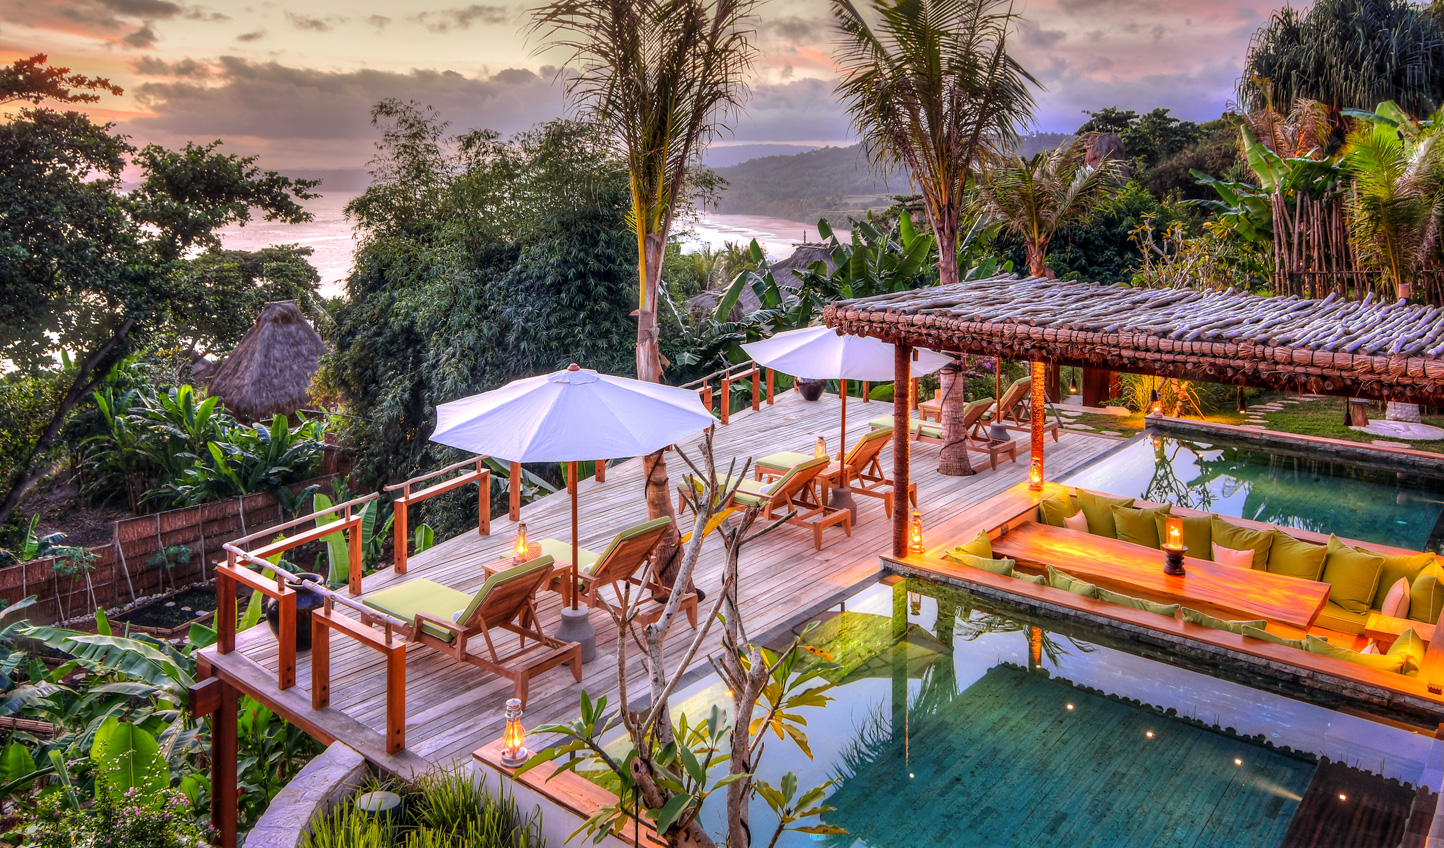 Perched in the tropical canopy, it's the perfect spot to watch the sunset